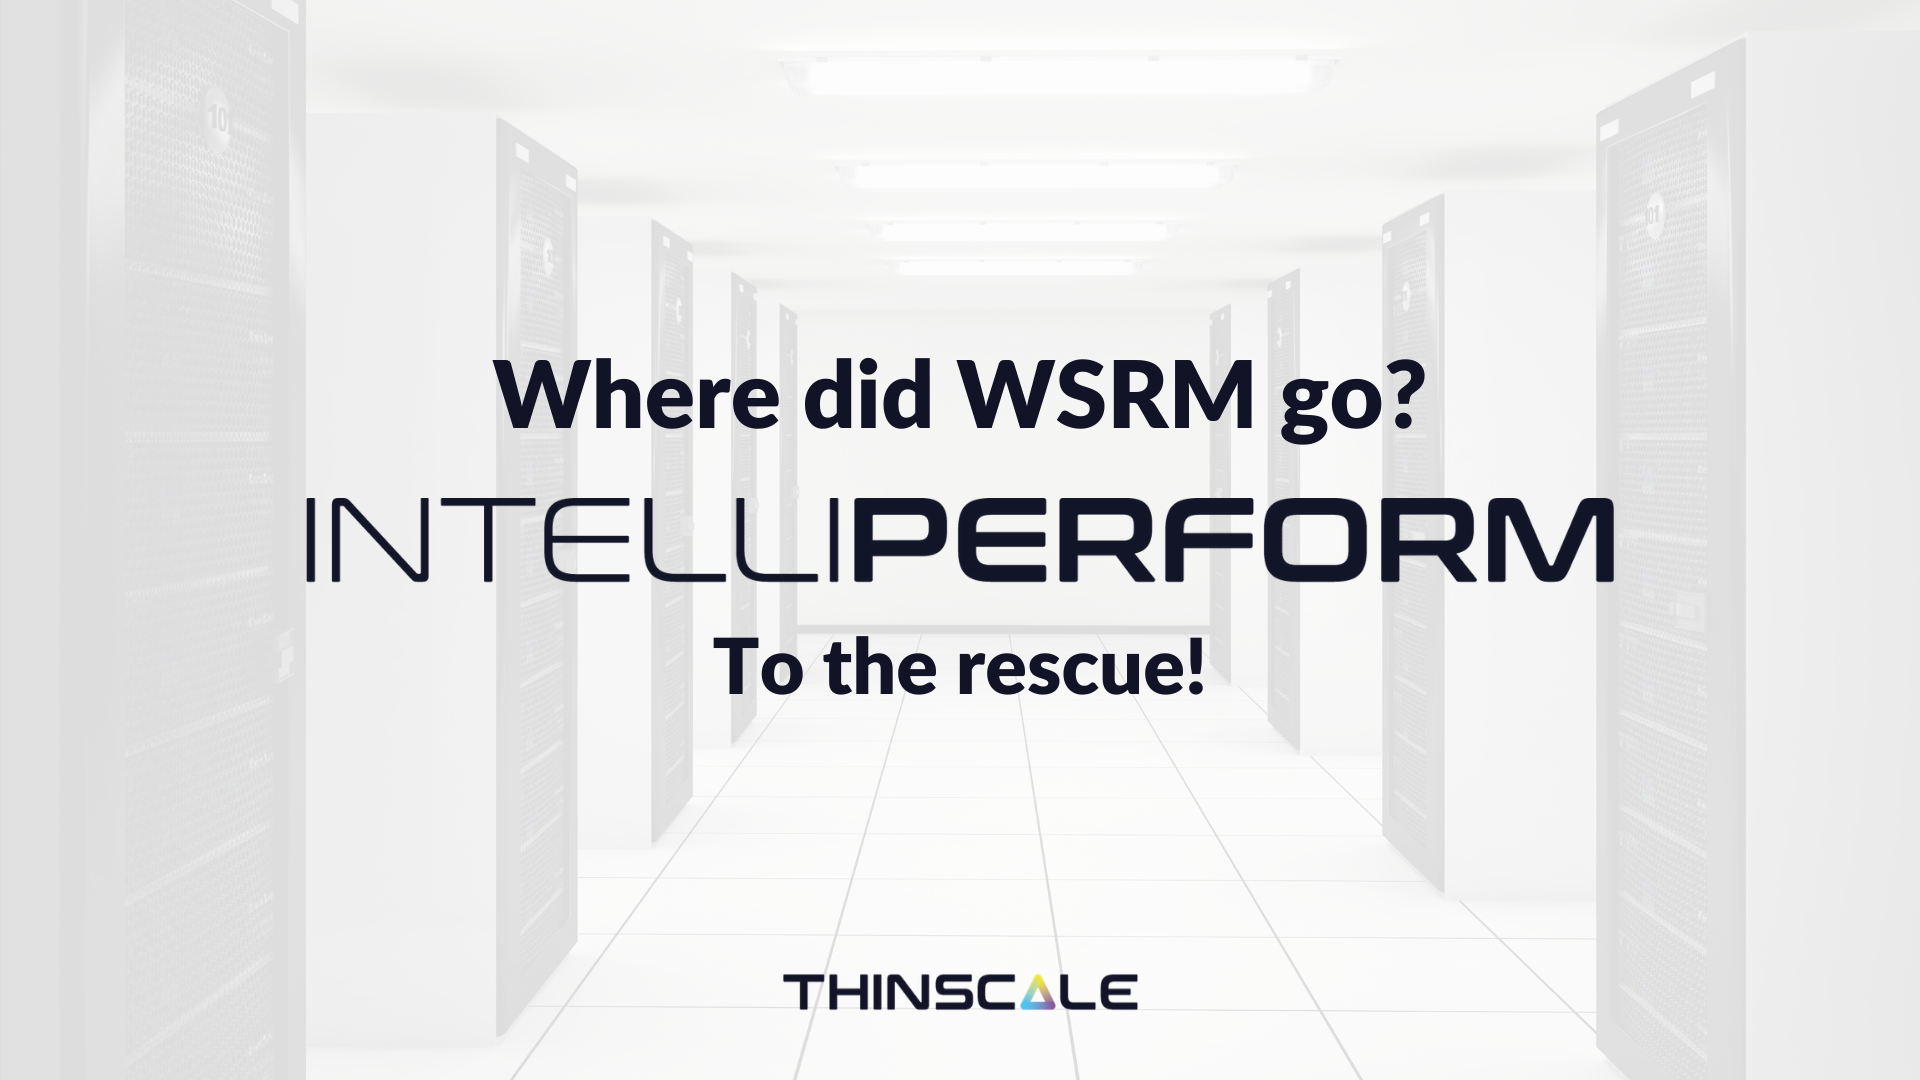 IntelliPerform: Filling the gap WSRM left behind